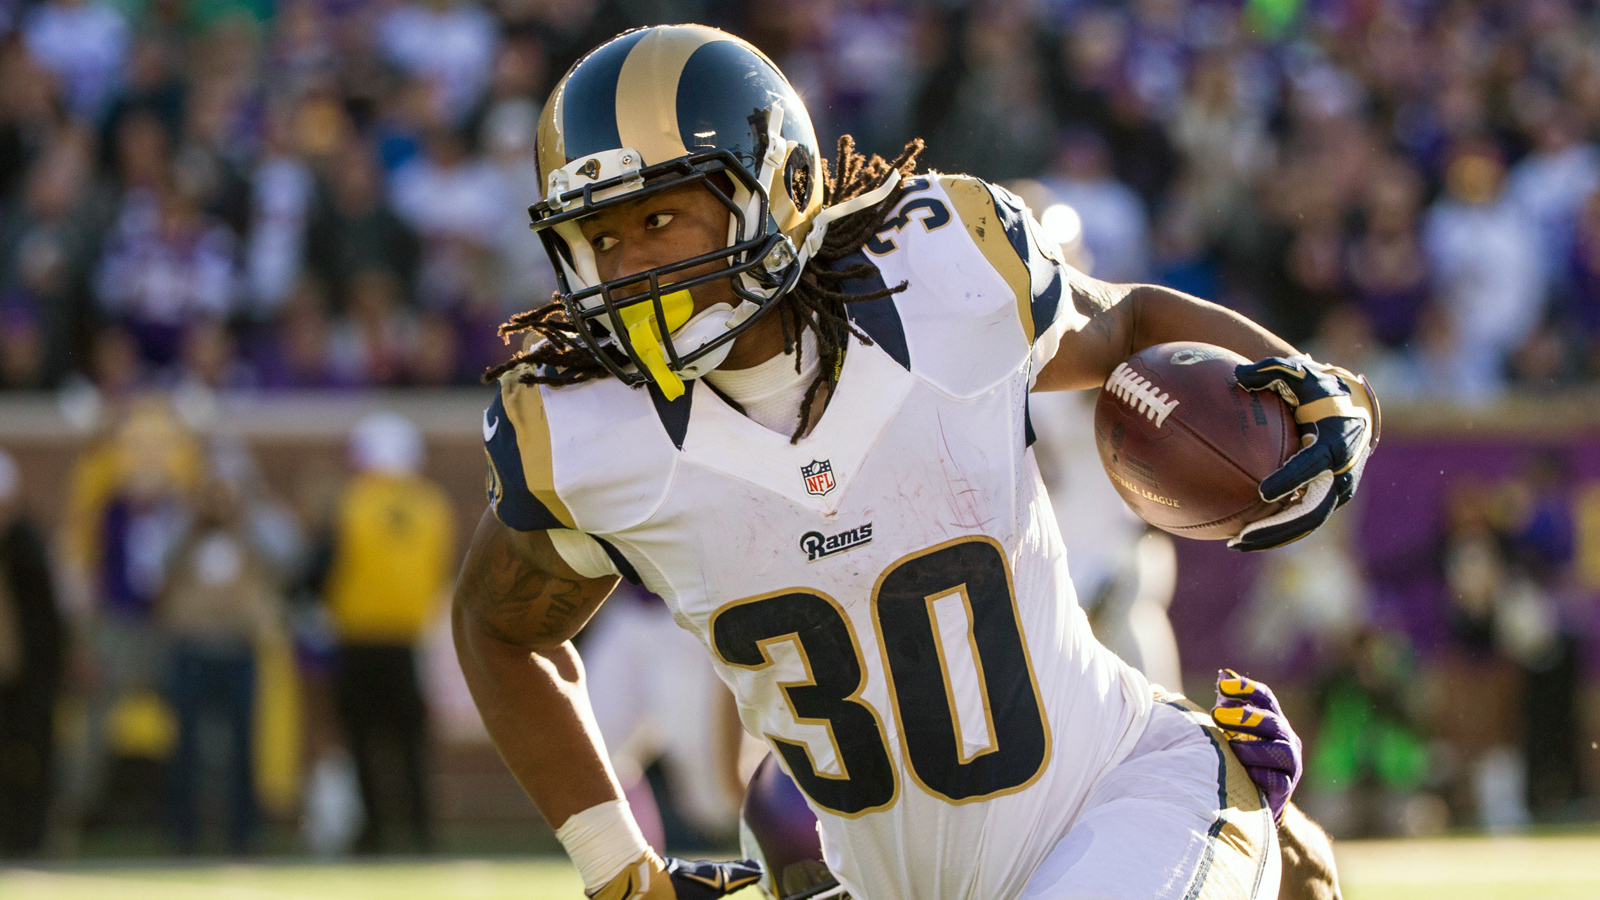 Rams unlikely to risk playing Todd Gurley in season finale